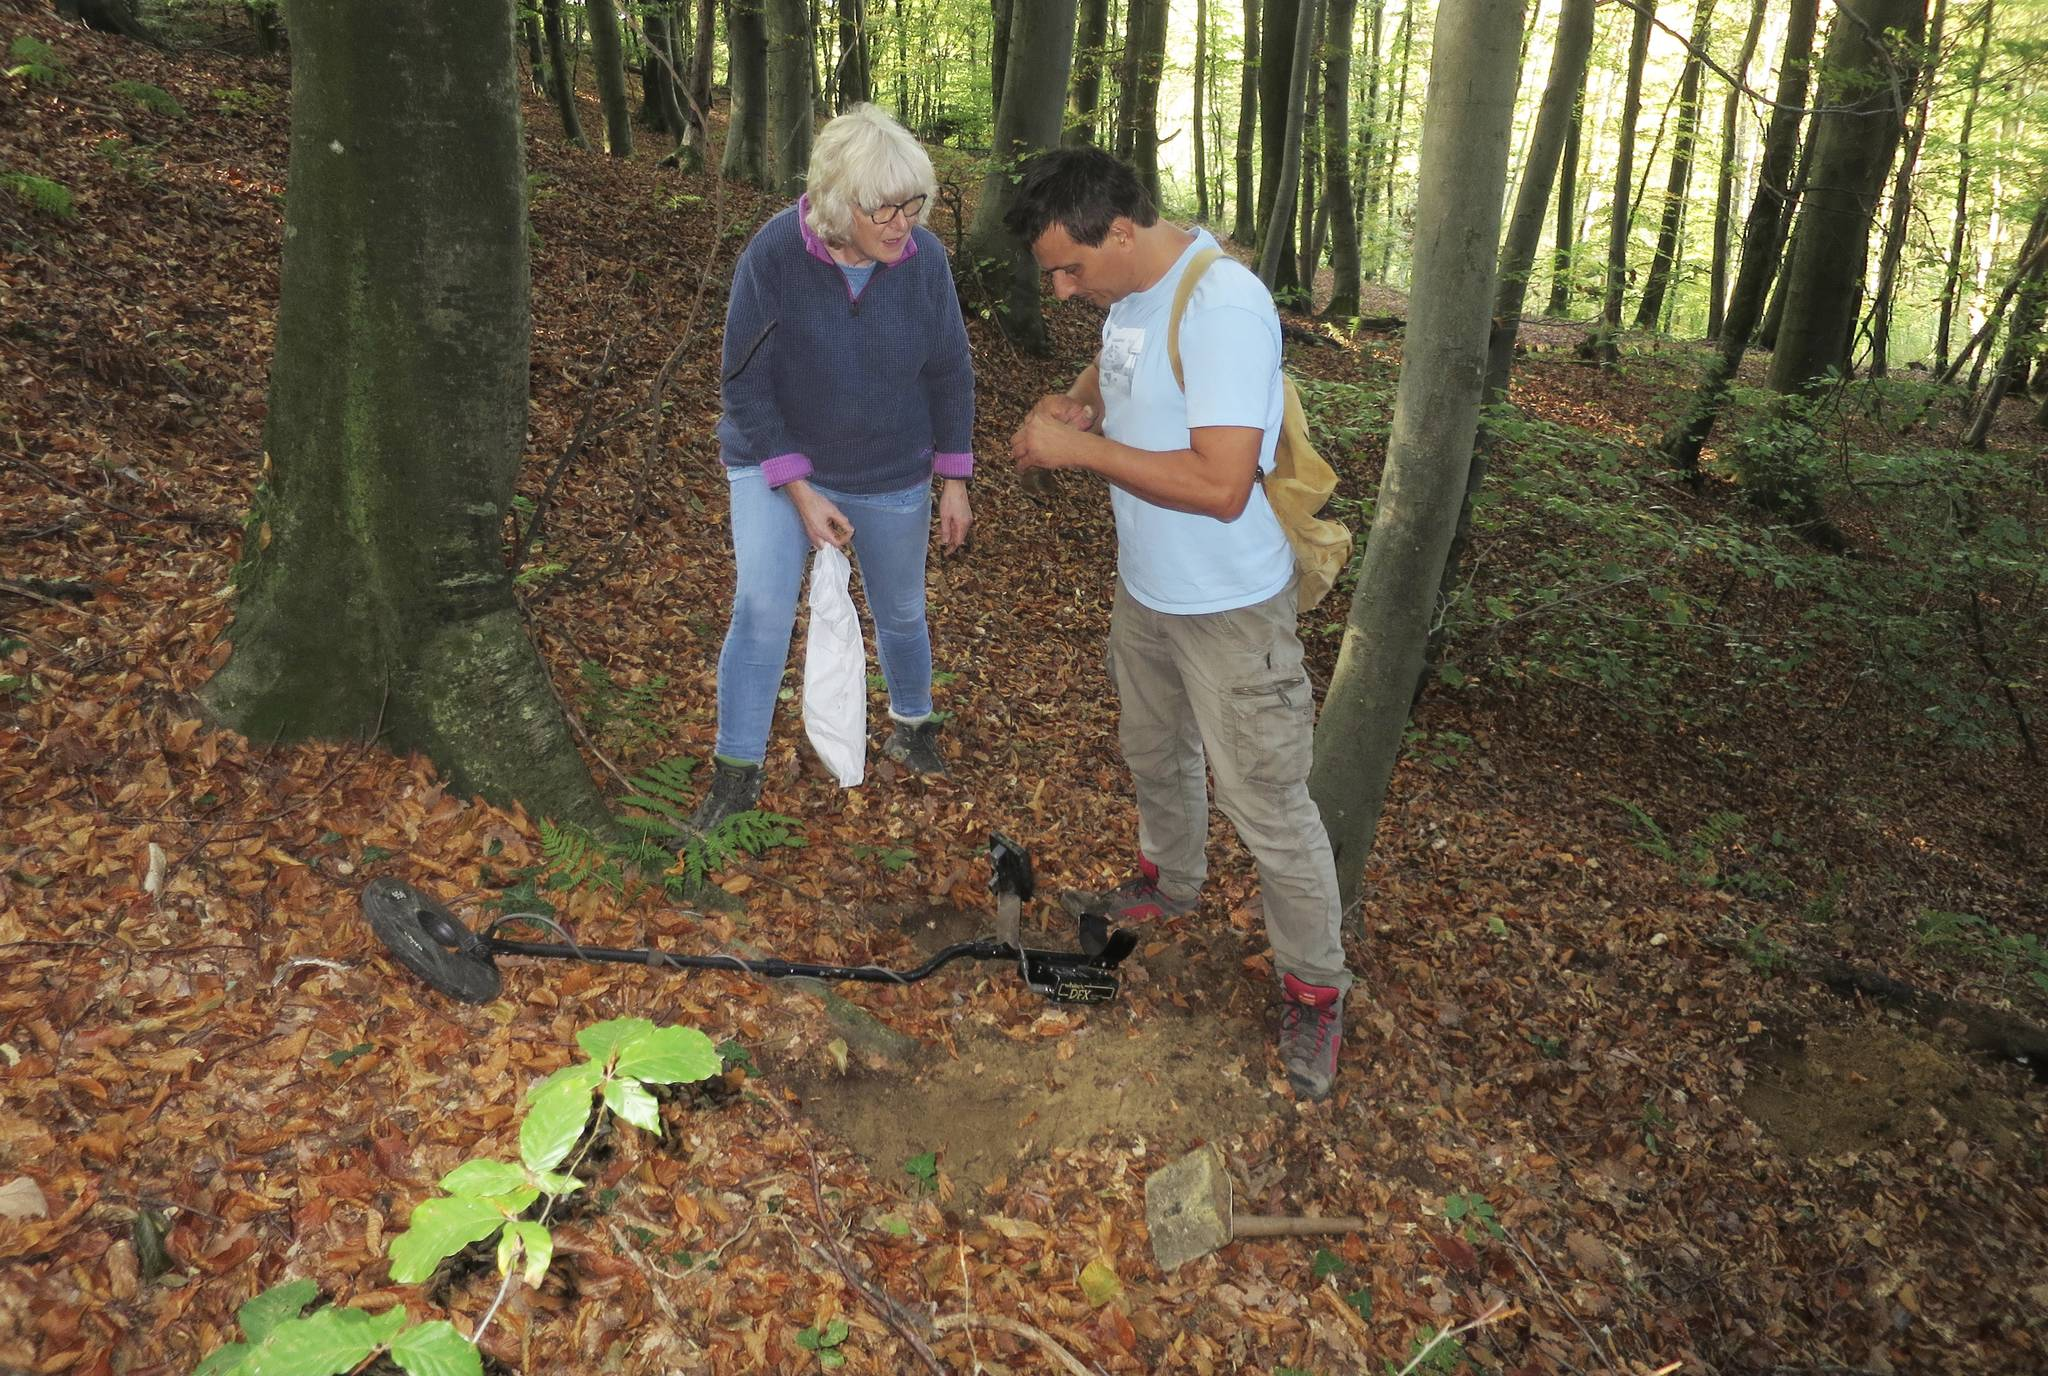 Heather Maling and crash researcher Radovan Zivanovic searching for small pieces from the crash site where Officer Henry Carruthers, of Trail, was killed in the Second World War. Photo: Submitted